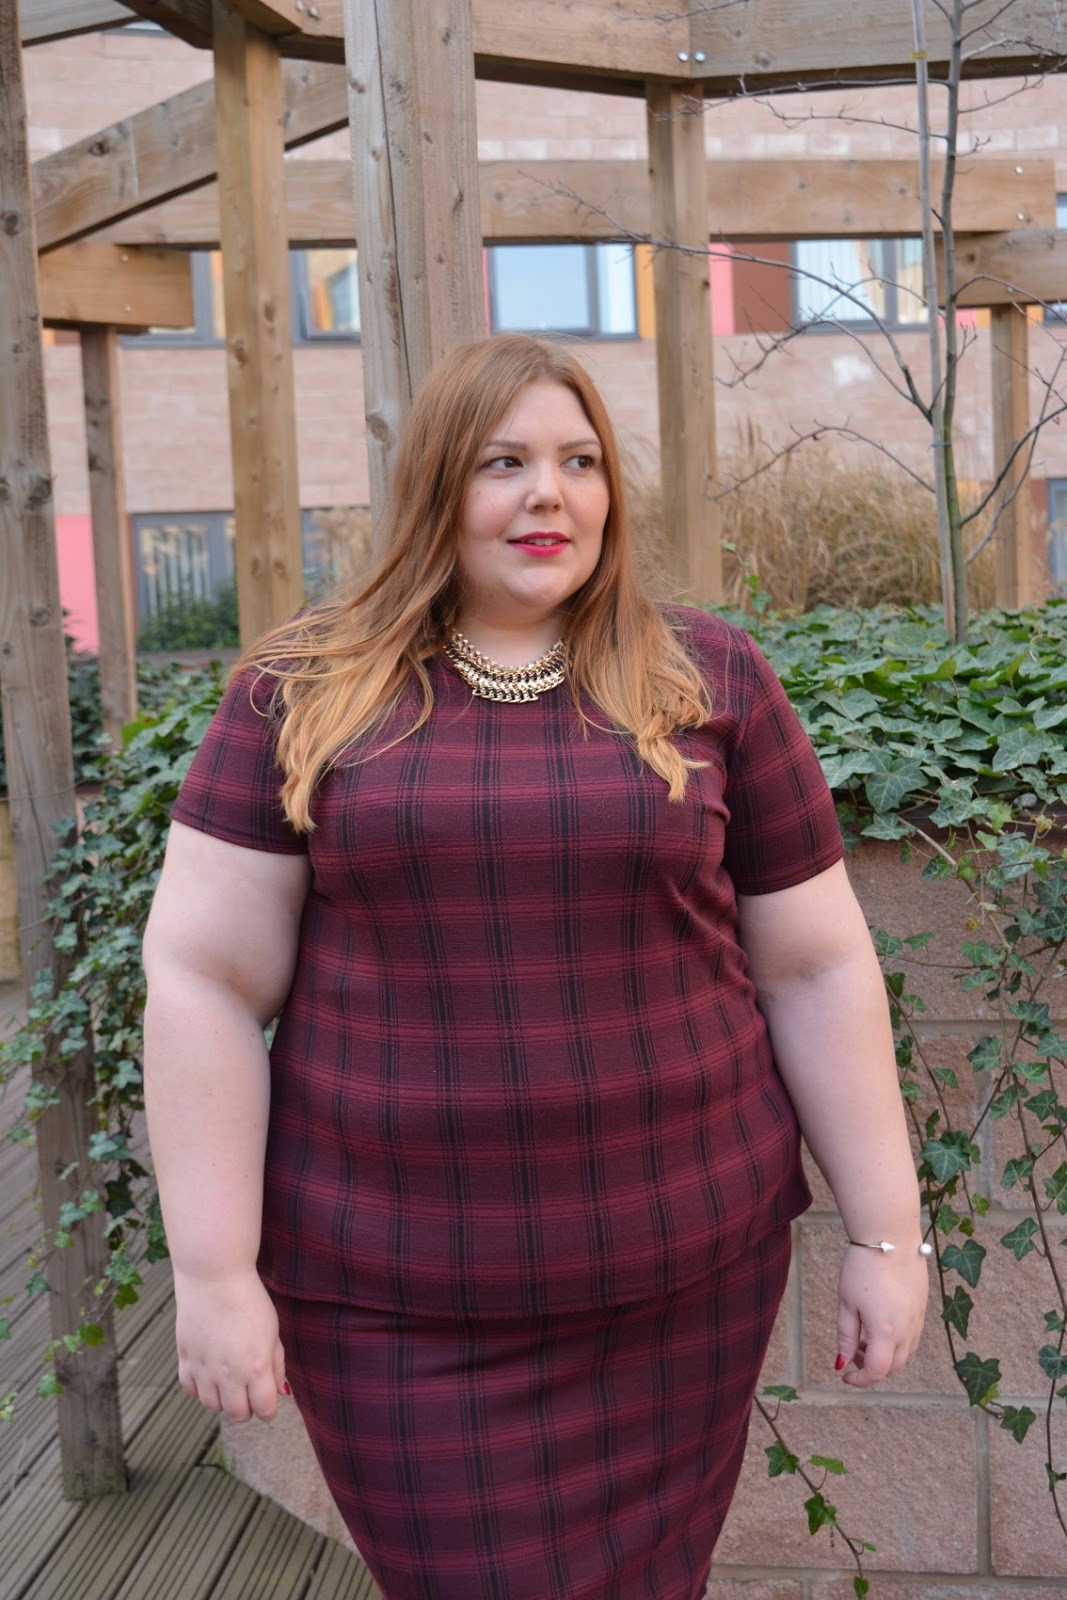 moroni big and beautiful singles Join the hundreds of single utah bbw already online finding love and friendship with singles in ephraim  moroni bbw big and beautiful dating website.